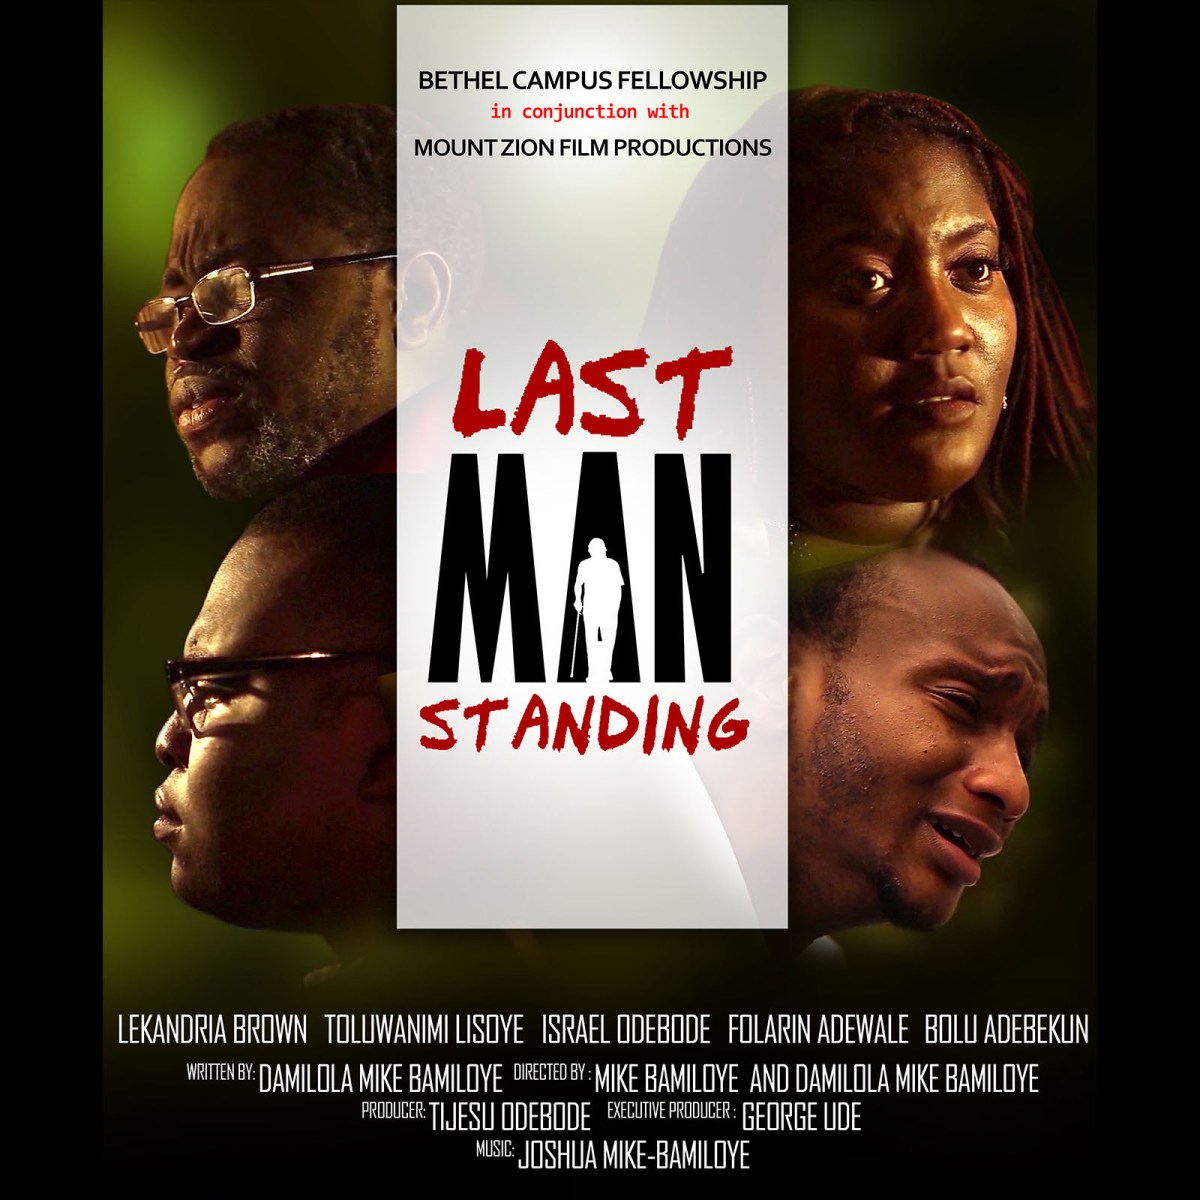 """#Movie : Mount Zion Film Productions Releases New Movie """"Last Man Standing"""" 